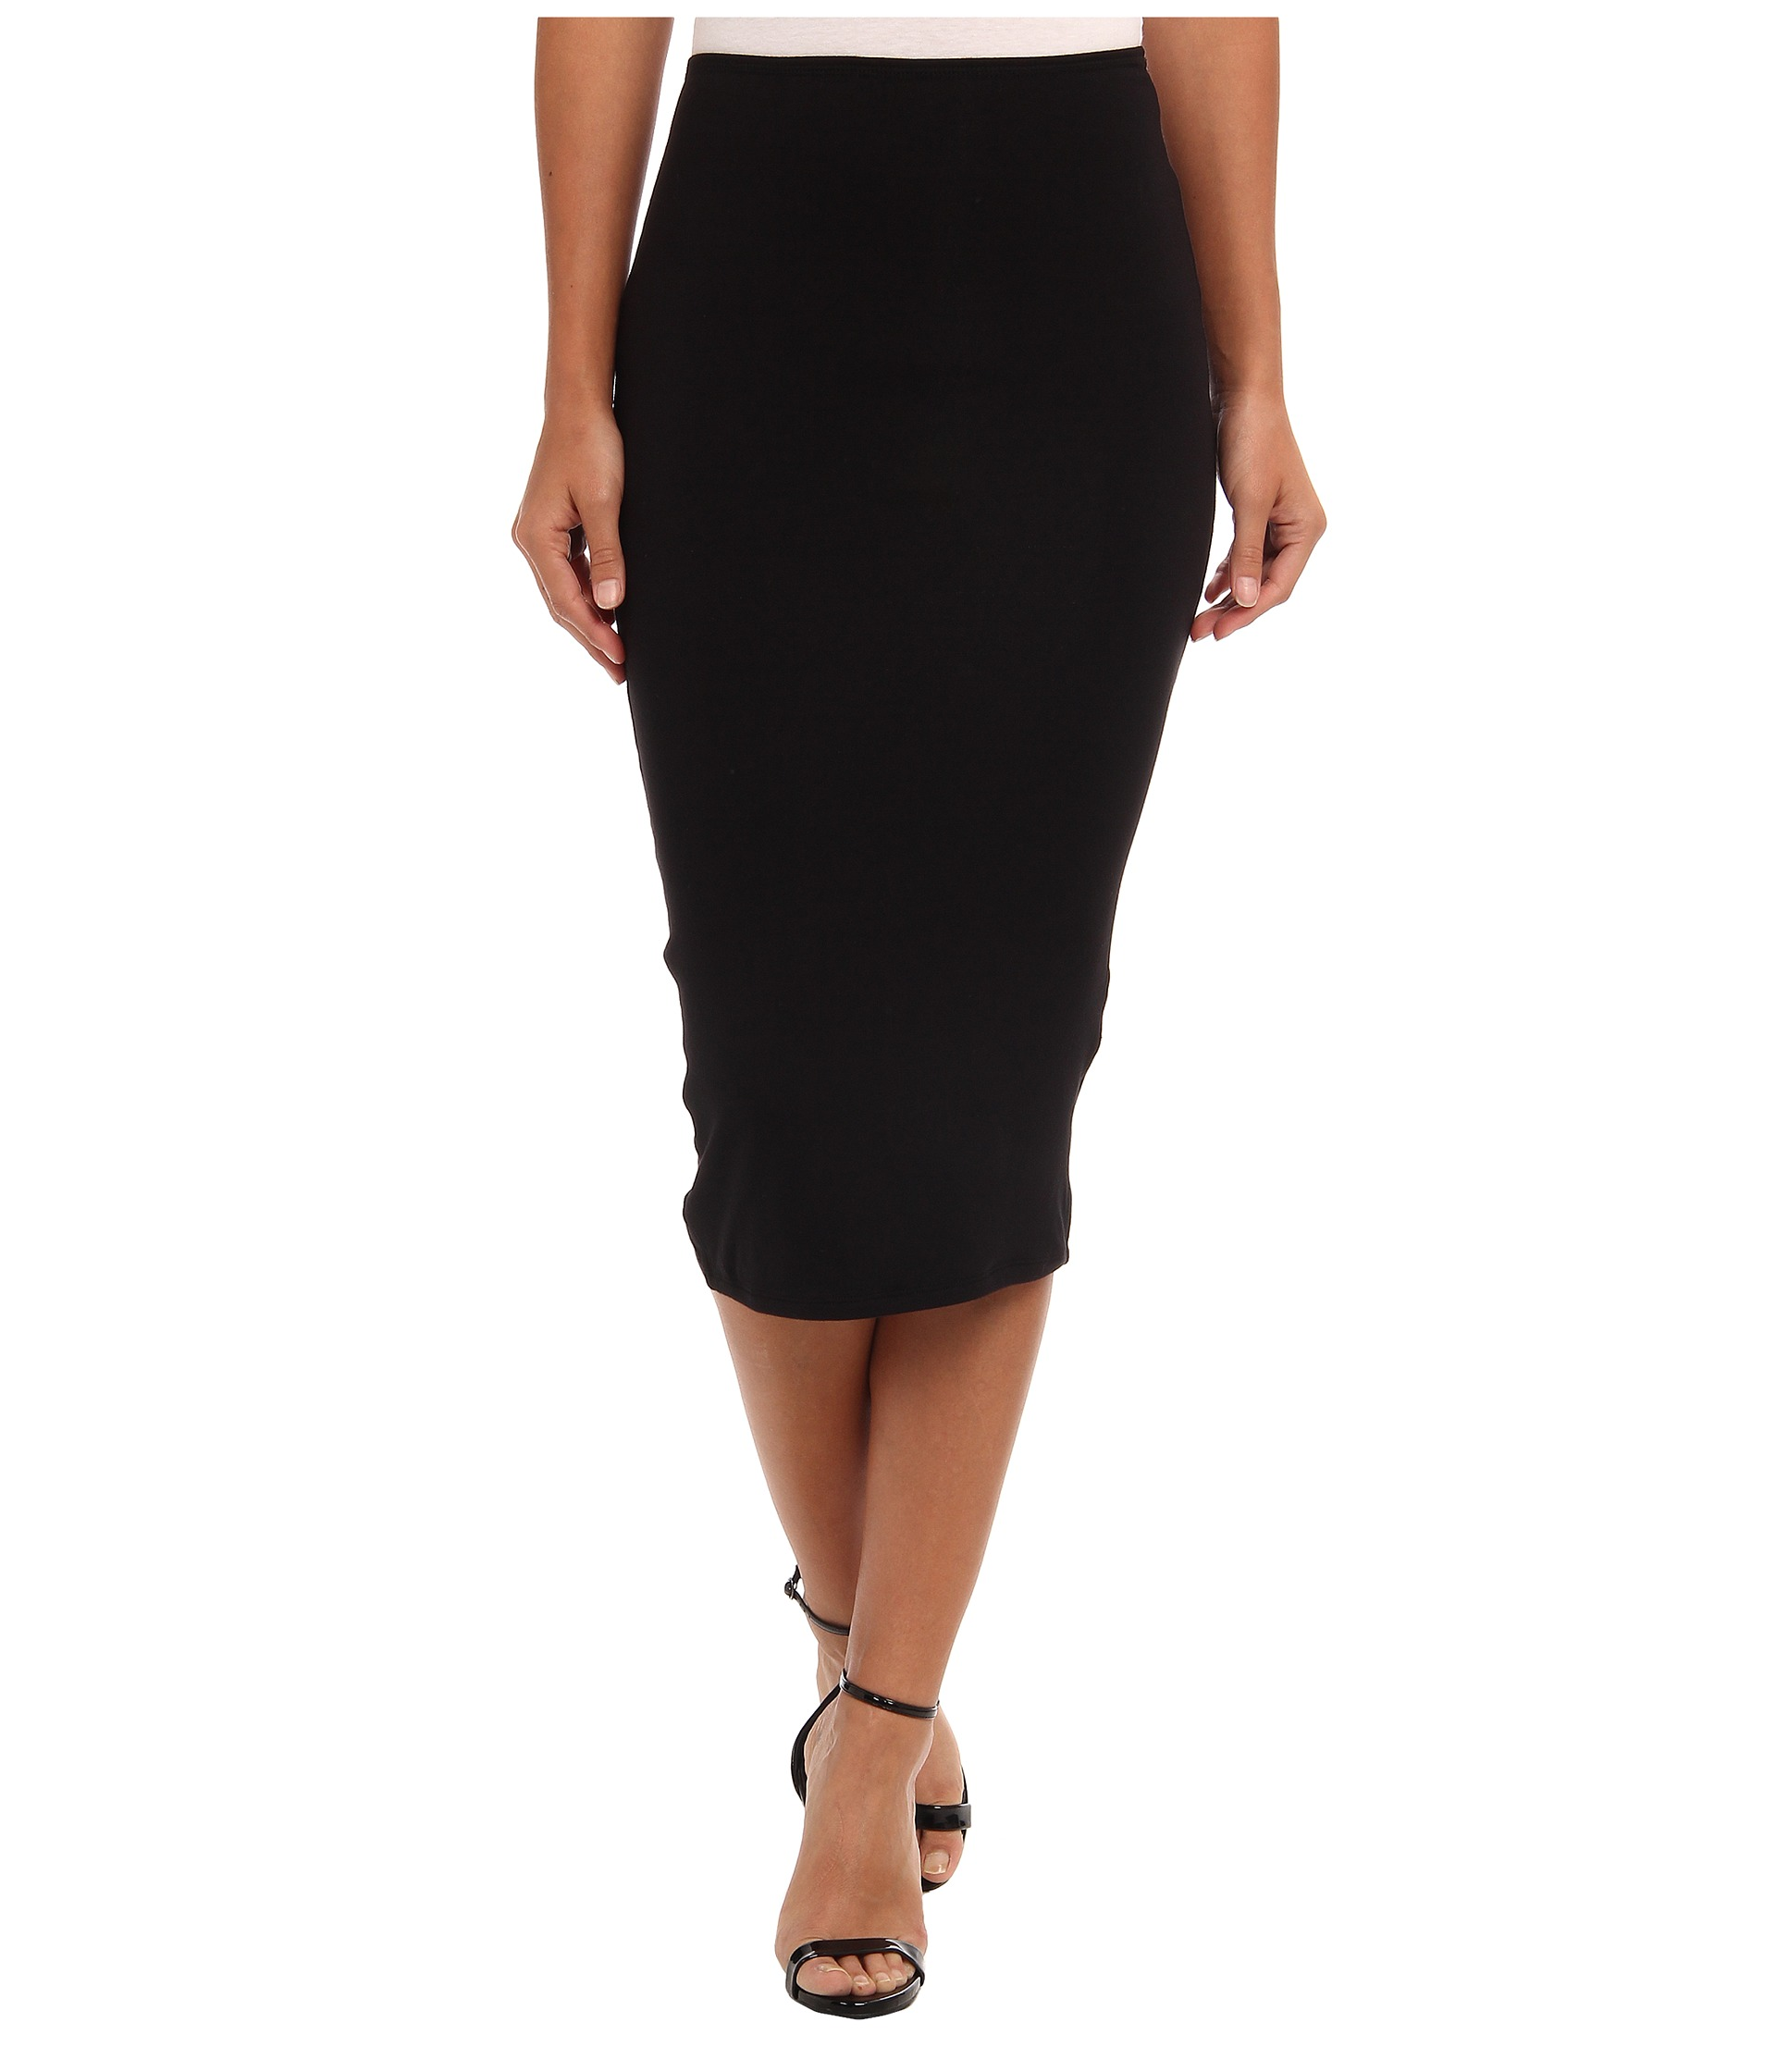 Dknyc Pull On Pencil Skirt W F Black, Black | Shipped Free at Zappos